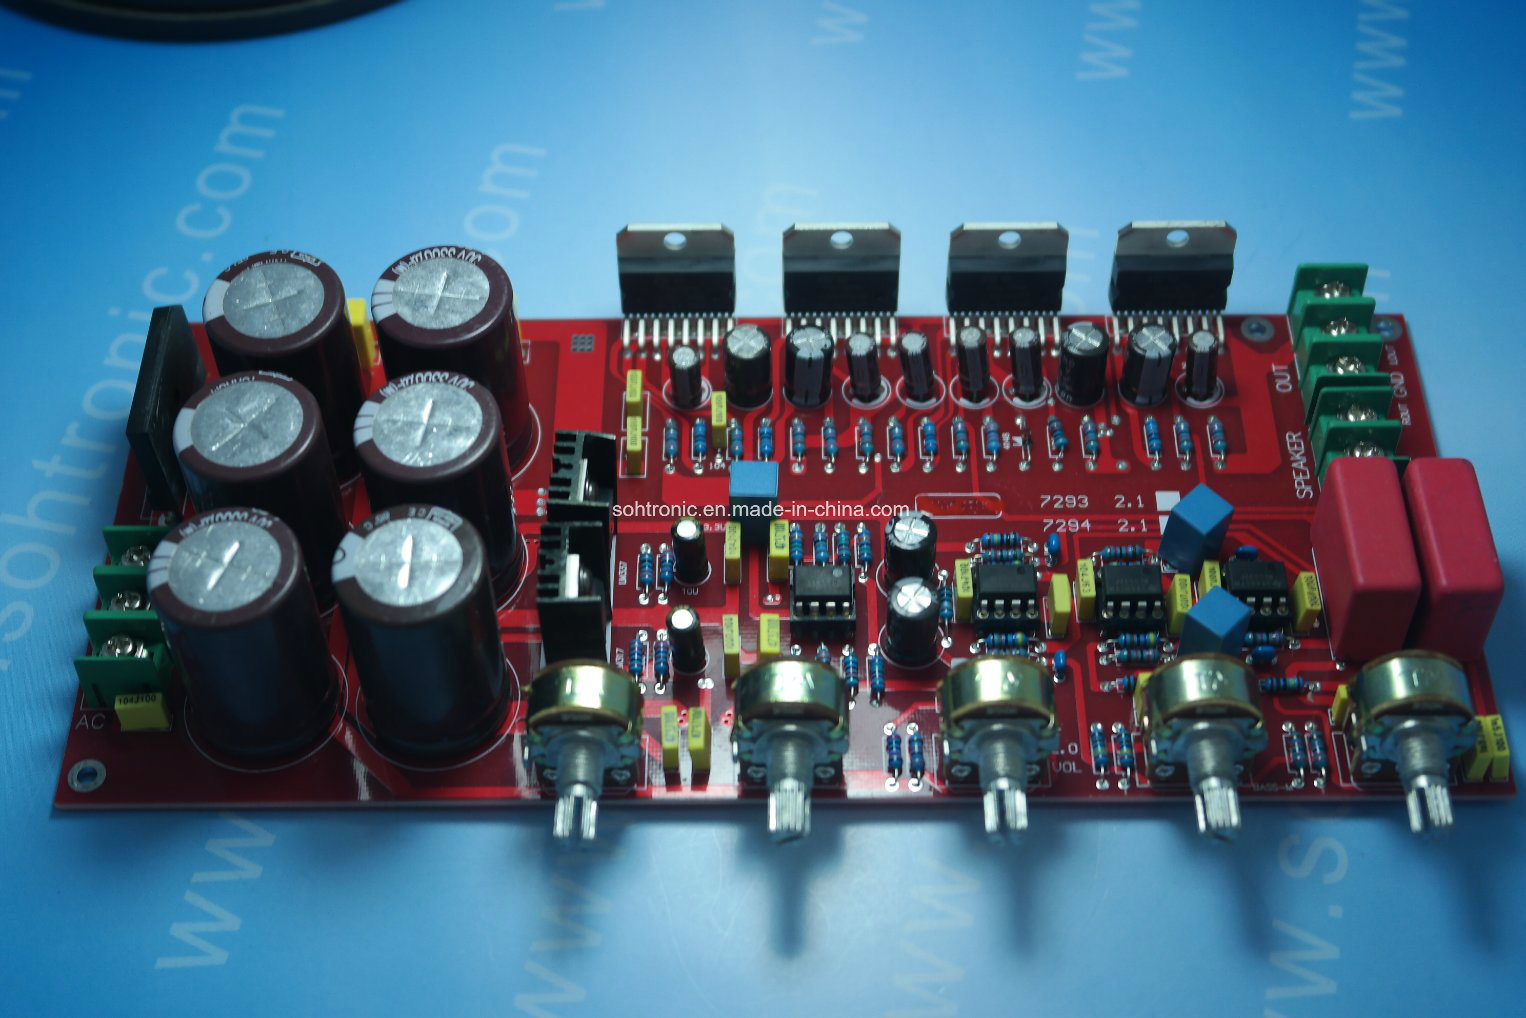 China Tda7294 21 Amplifier Module Photos Pictures Made In Chinacom 100w Audiio